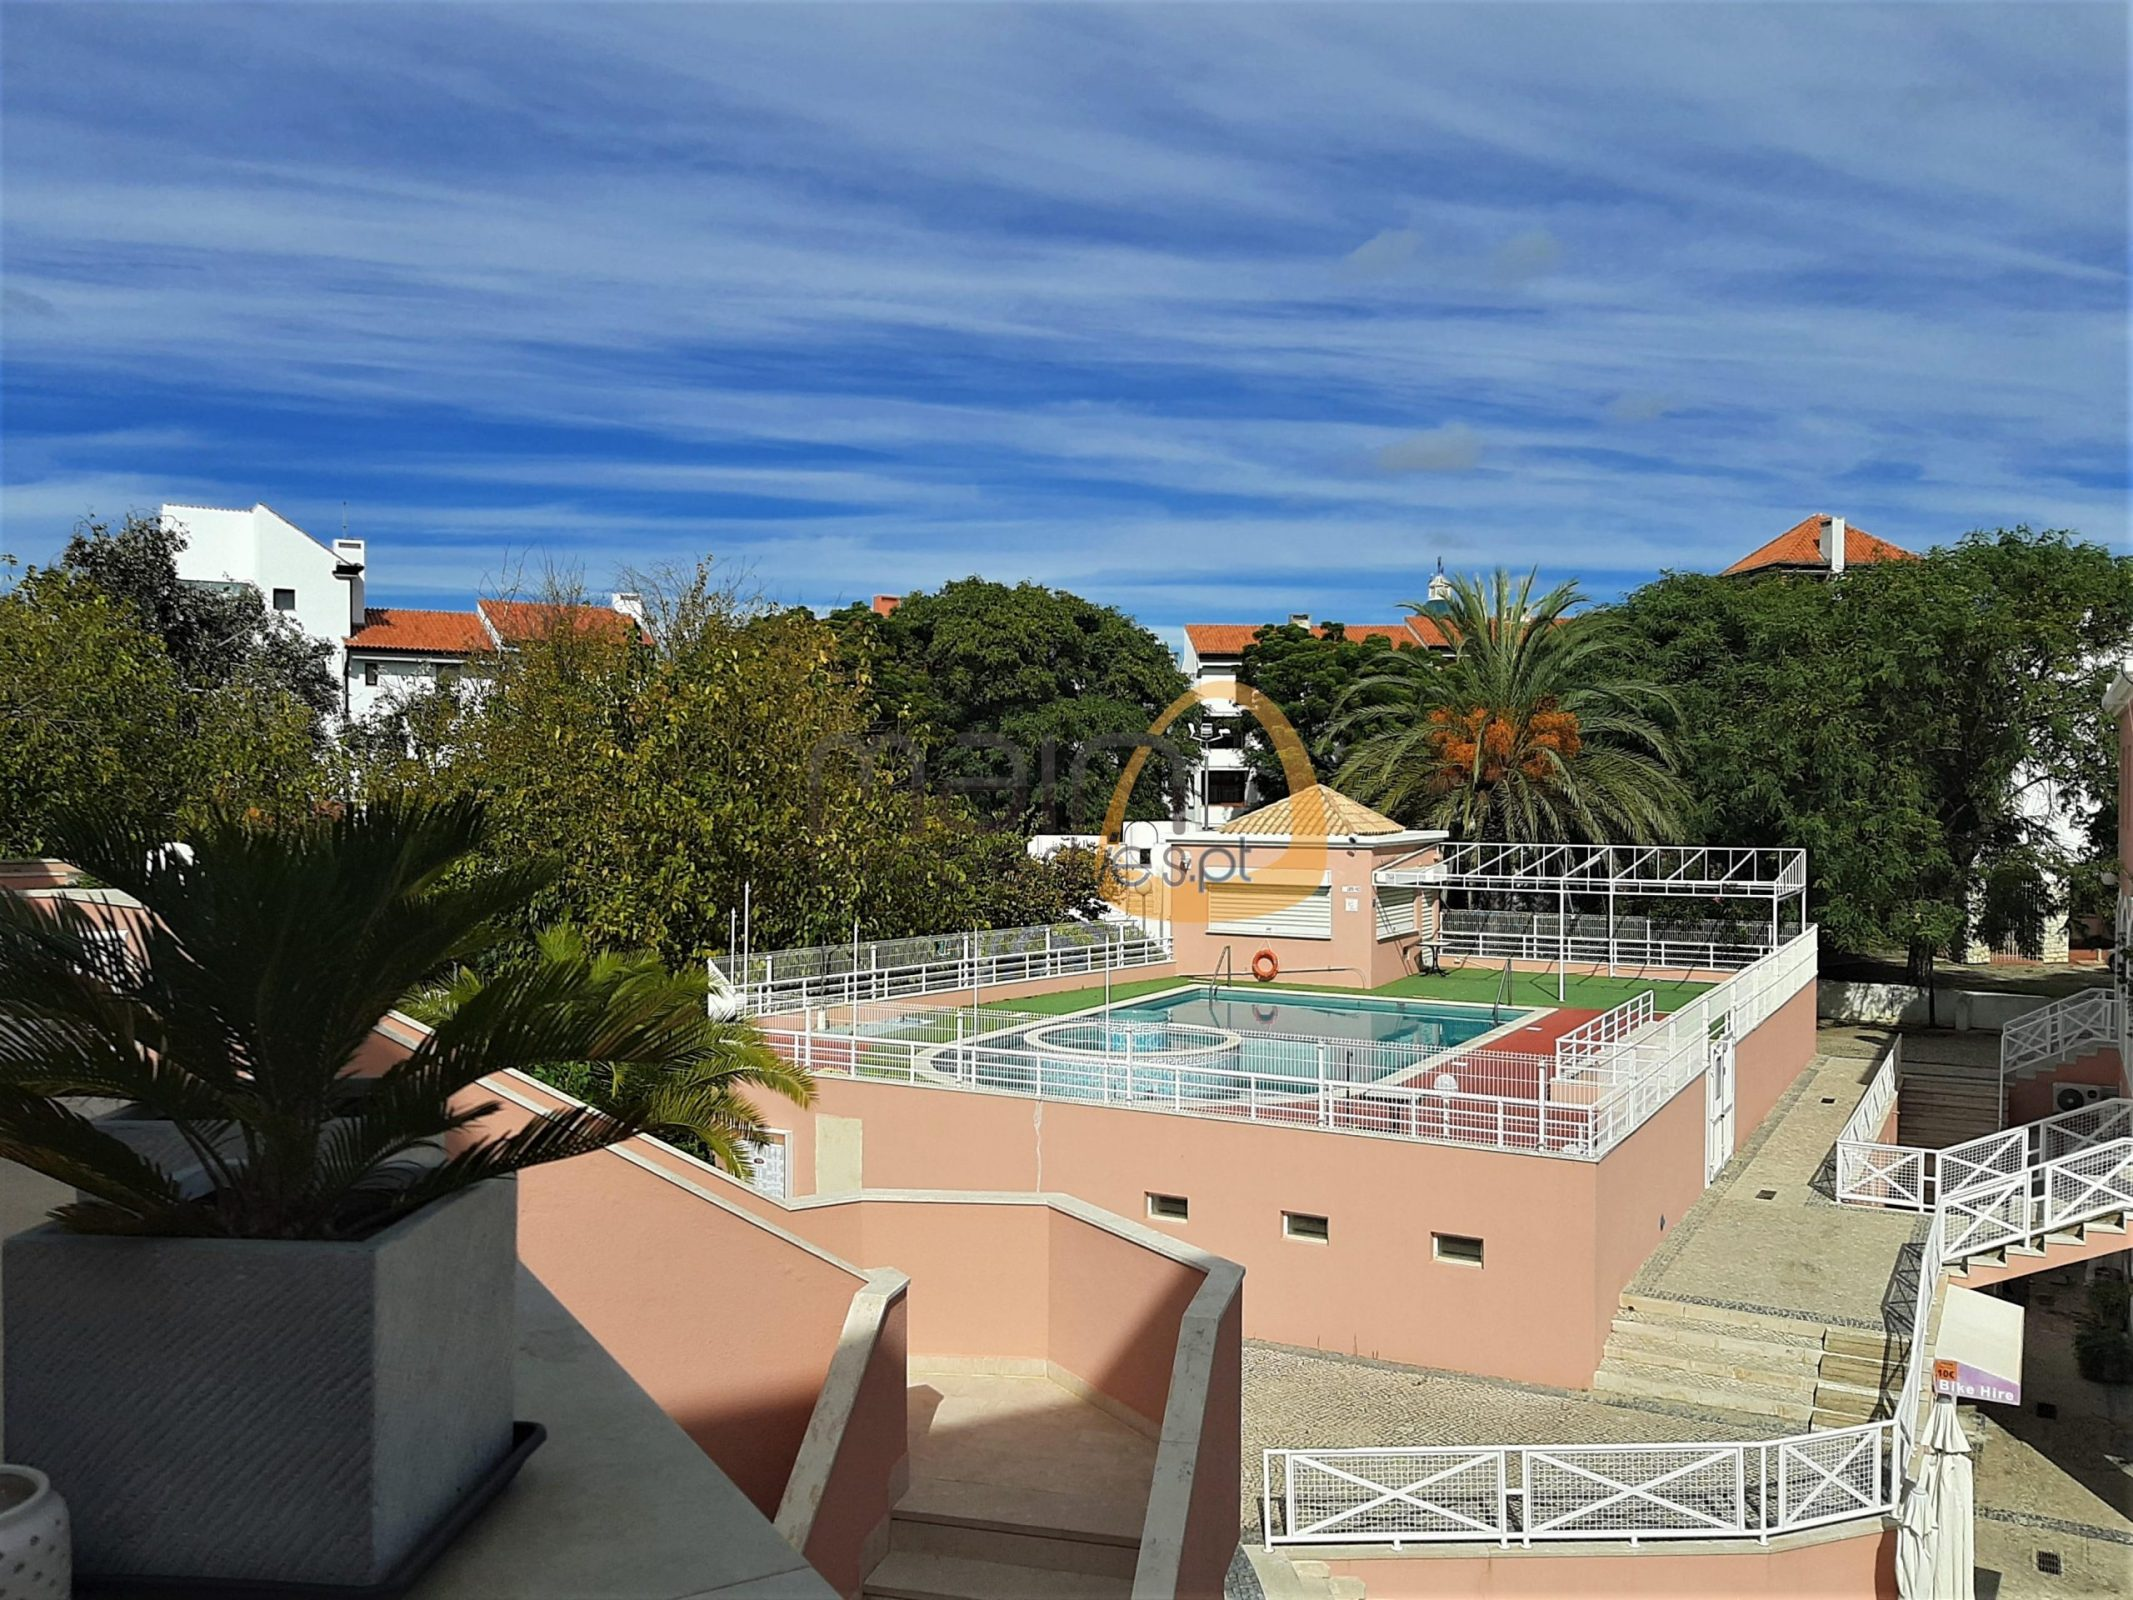 1 bedroom apartment and swimming pool in Vilamoura Marina